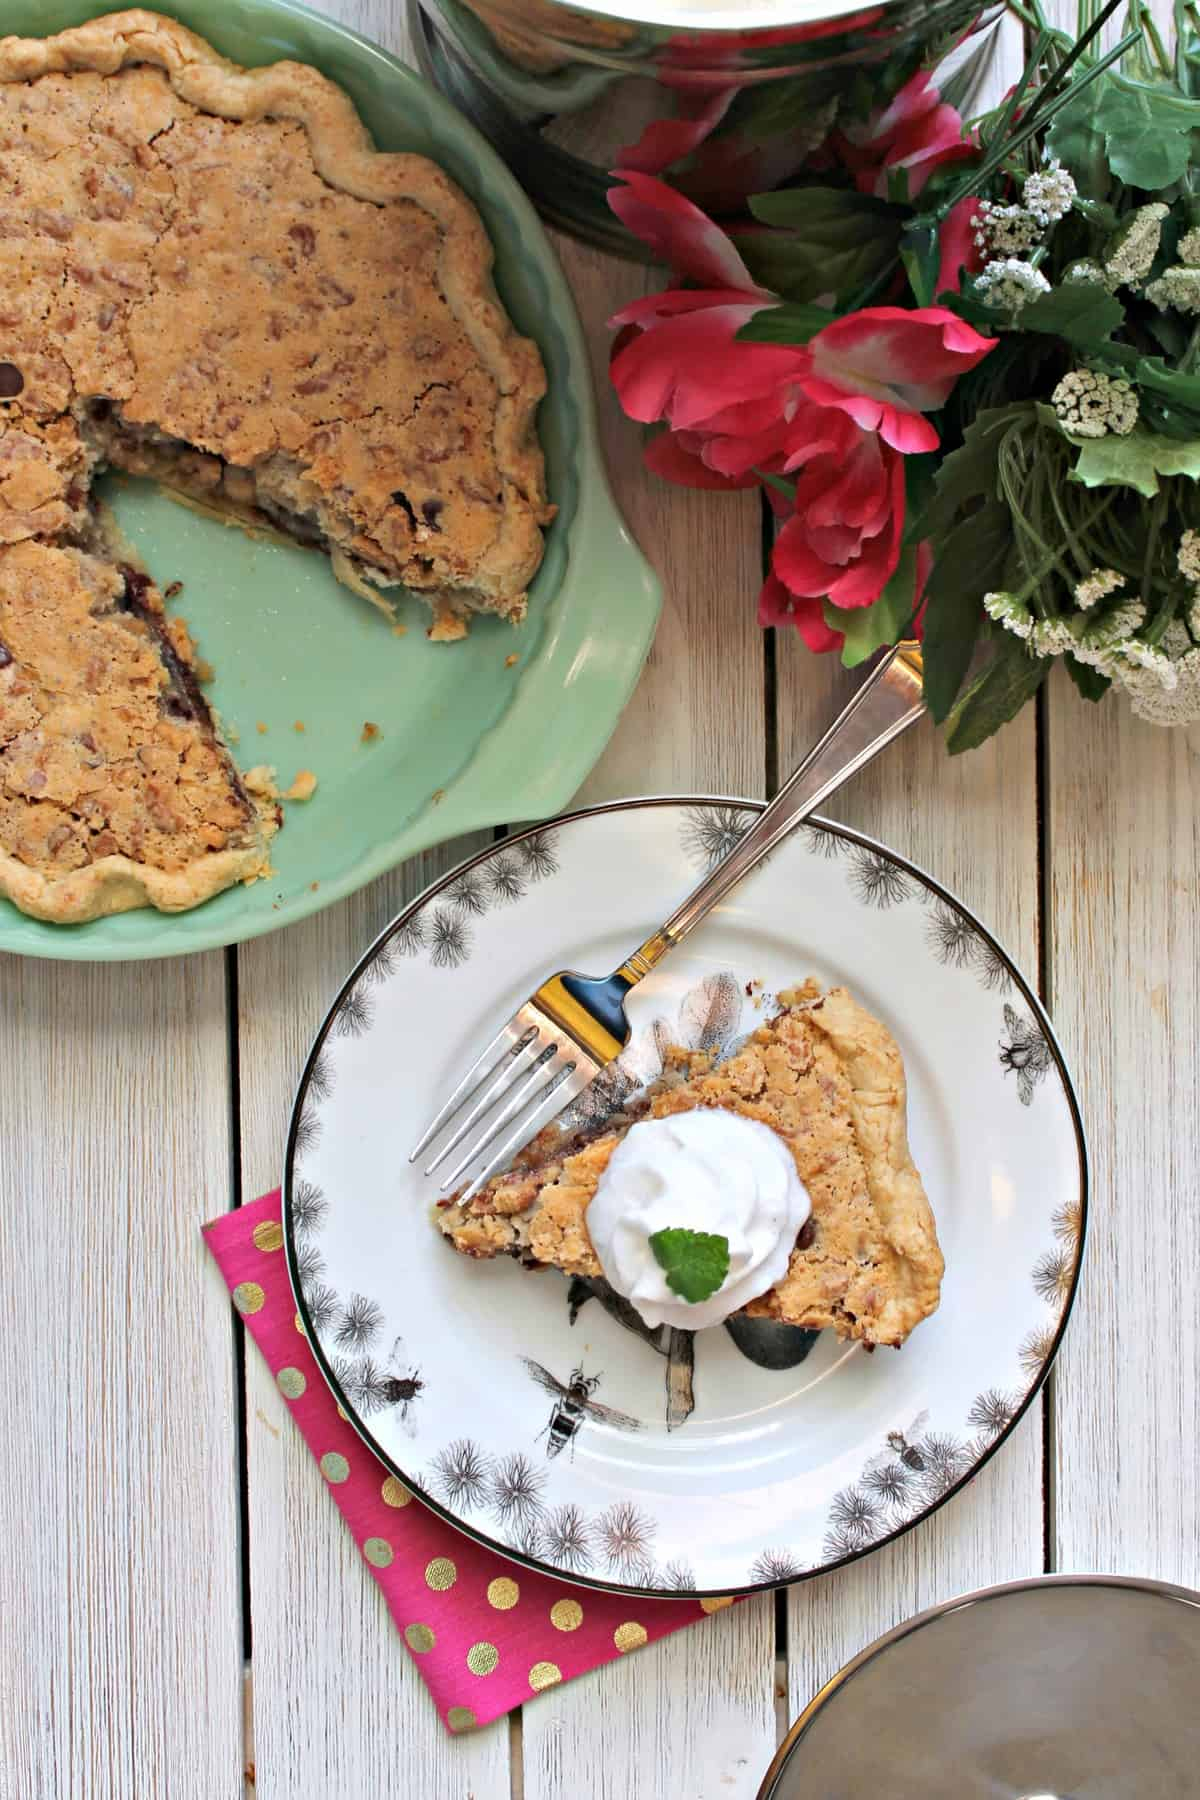 Race Day Pie! This Kentucky Derby pie recipe is one you should bet on: A rich, bourbon-infused chocolate and walnut filling bakes inside a pastry dough shell, creating a cookie-like confection that's trophy-worthy!